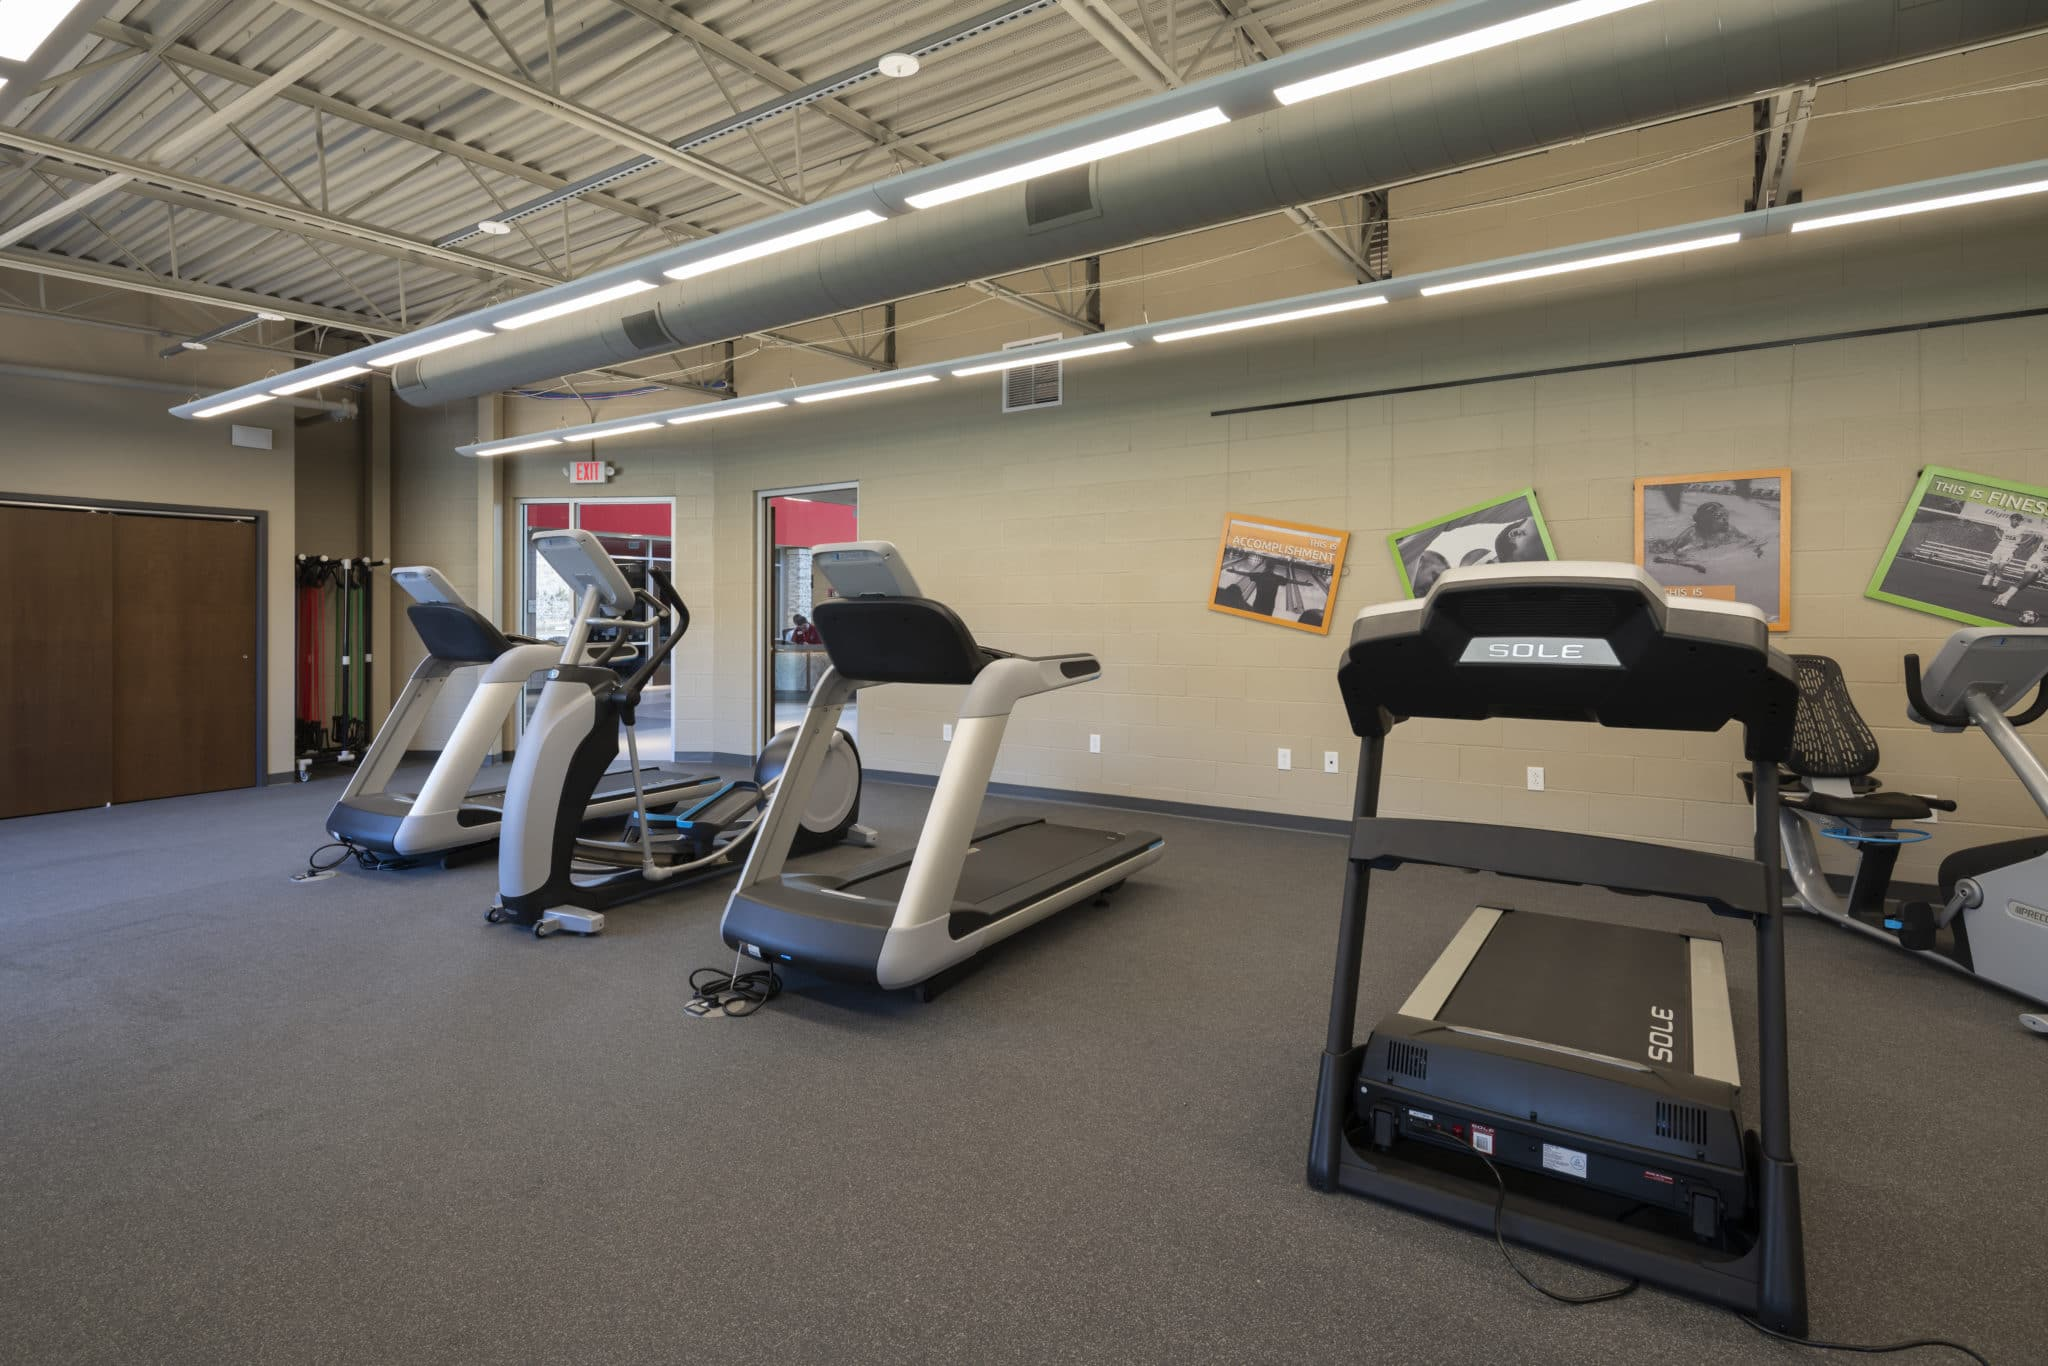 Ellipticals and treadmills in the fitness center at the Training for Life Campus